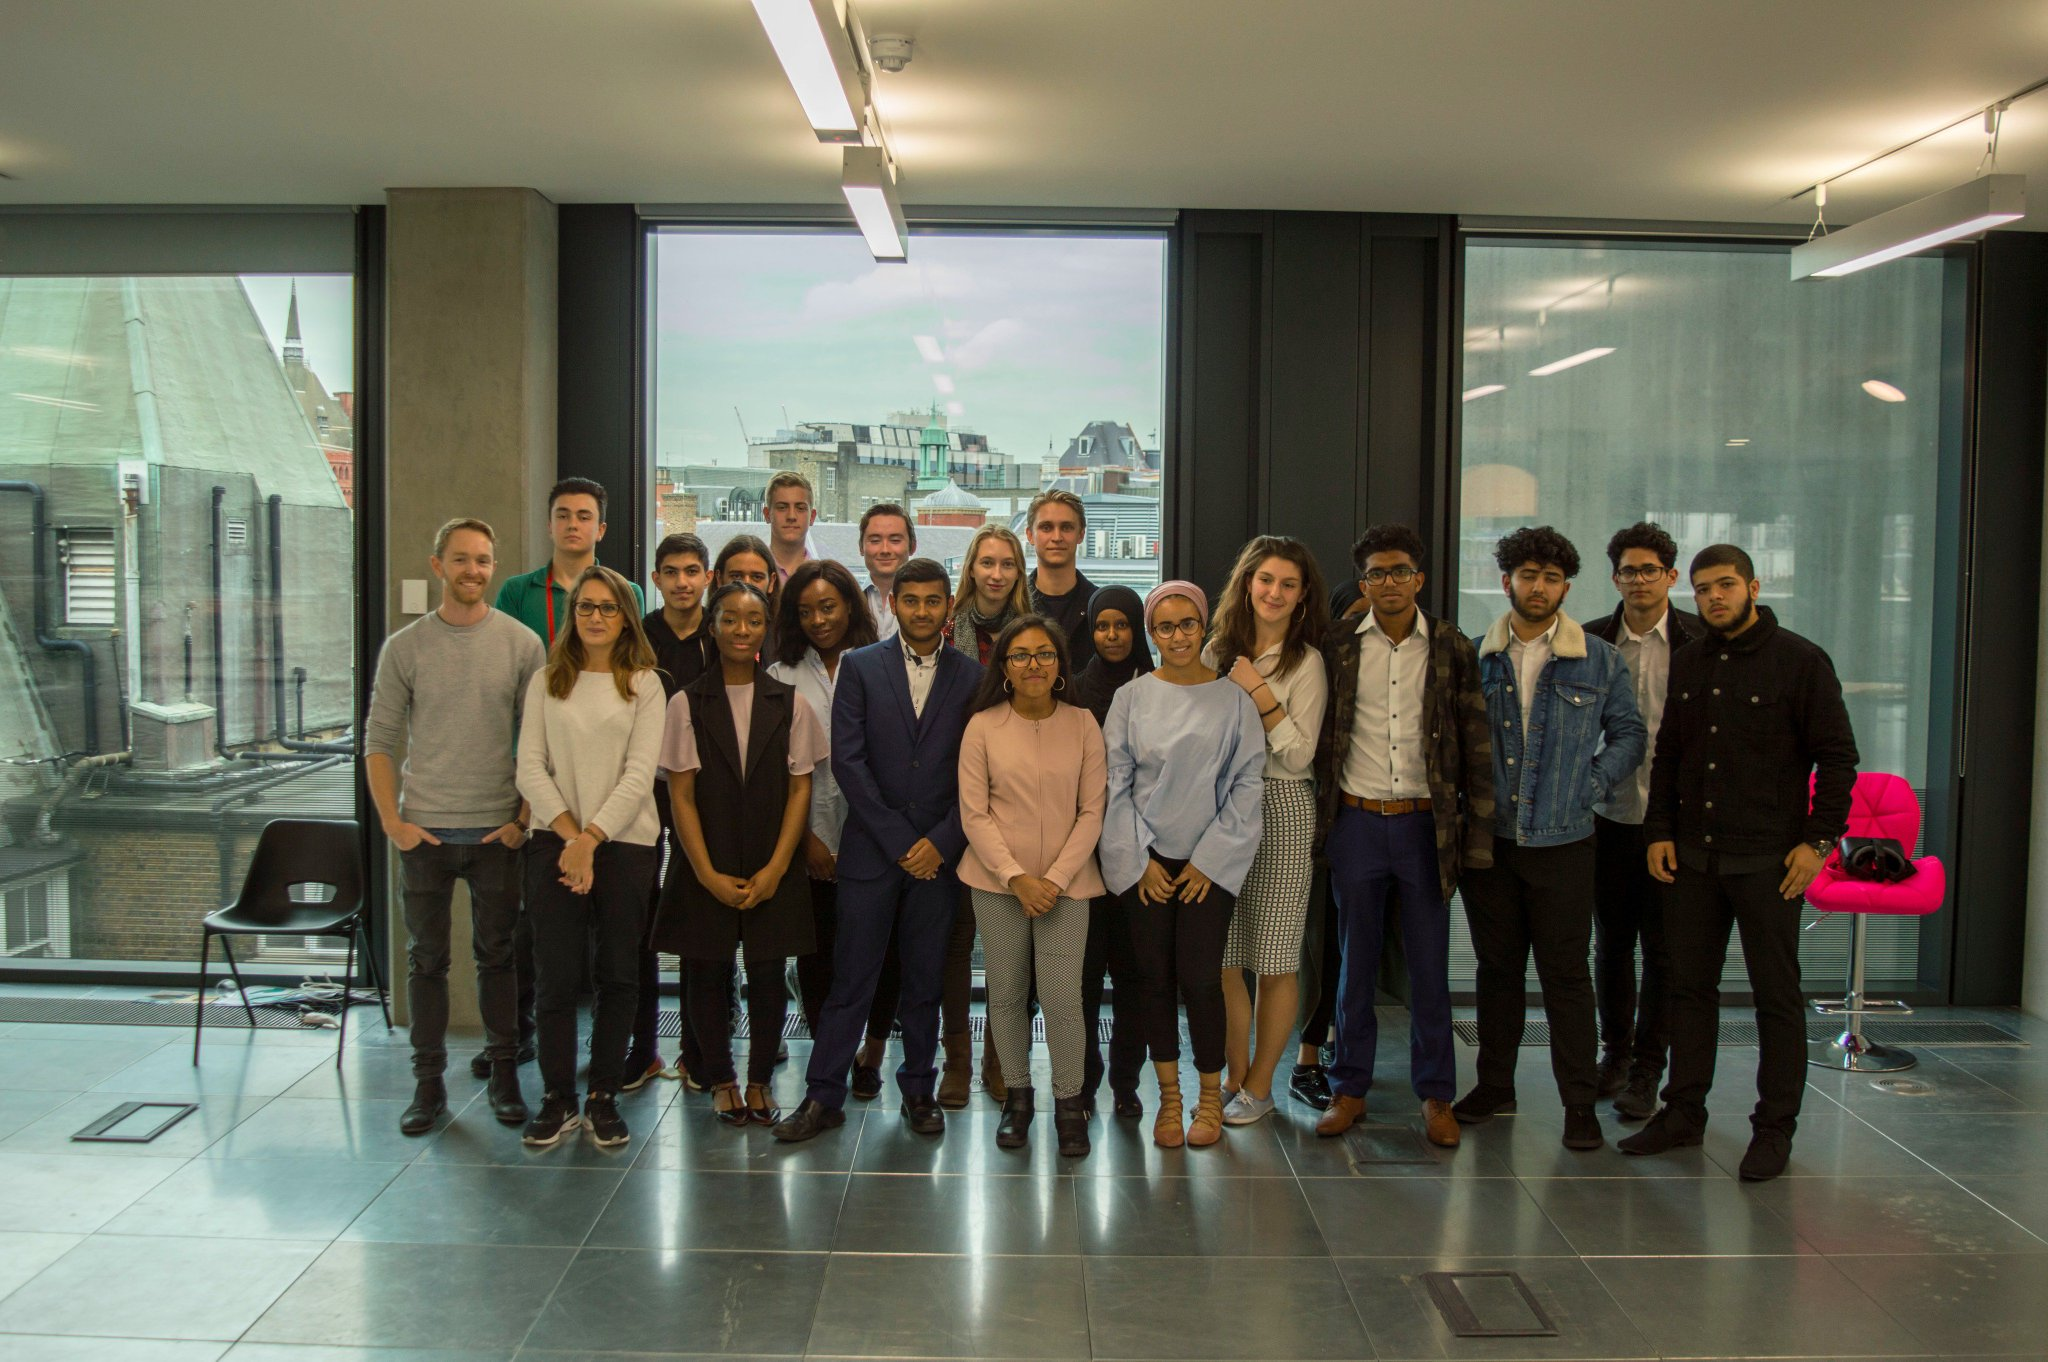 A huge well done to everyone who came to the office today for #adunlocked, the future is in good hands 🙌 https://t.co/61wW0o7zV5